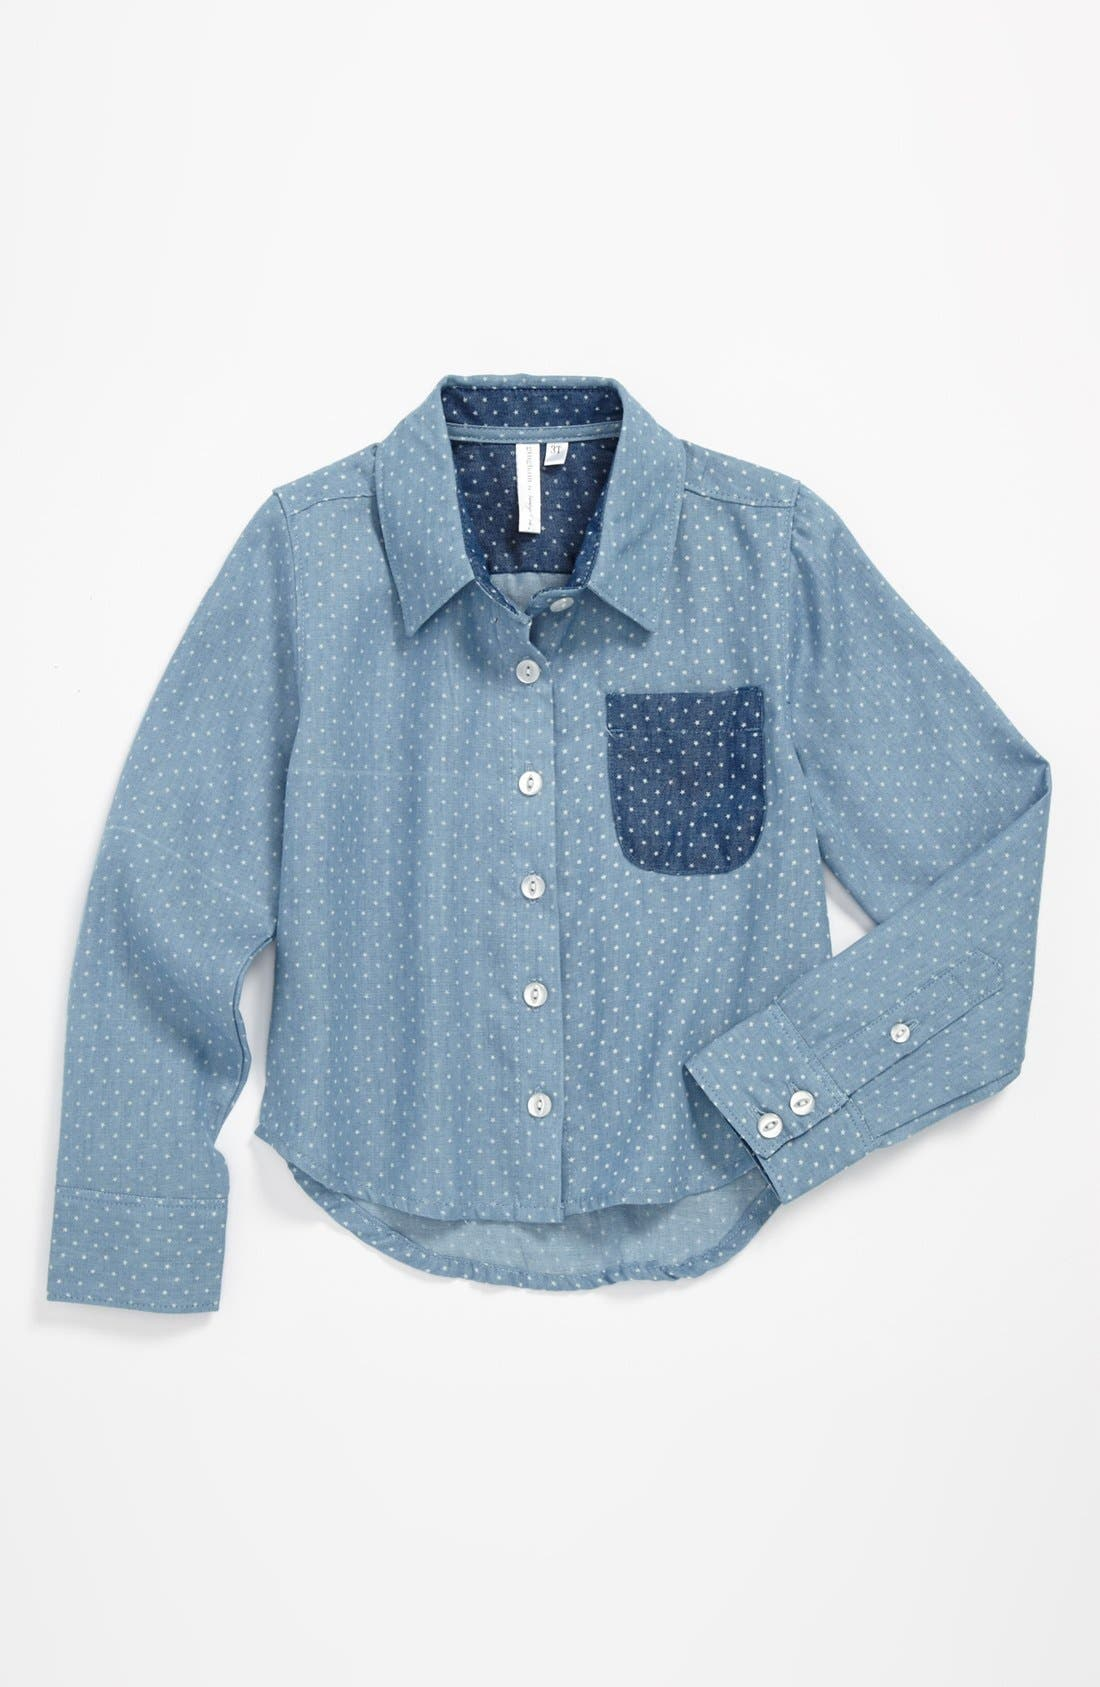 Alternate Image 1 Selected - gingham by Sovereign Code 'Starry Night' Shirt (Toddler Girls)